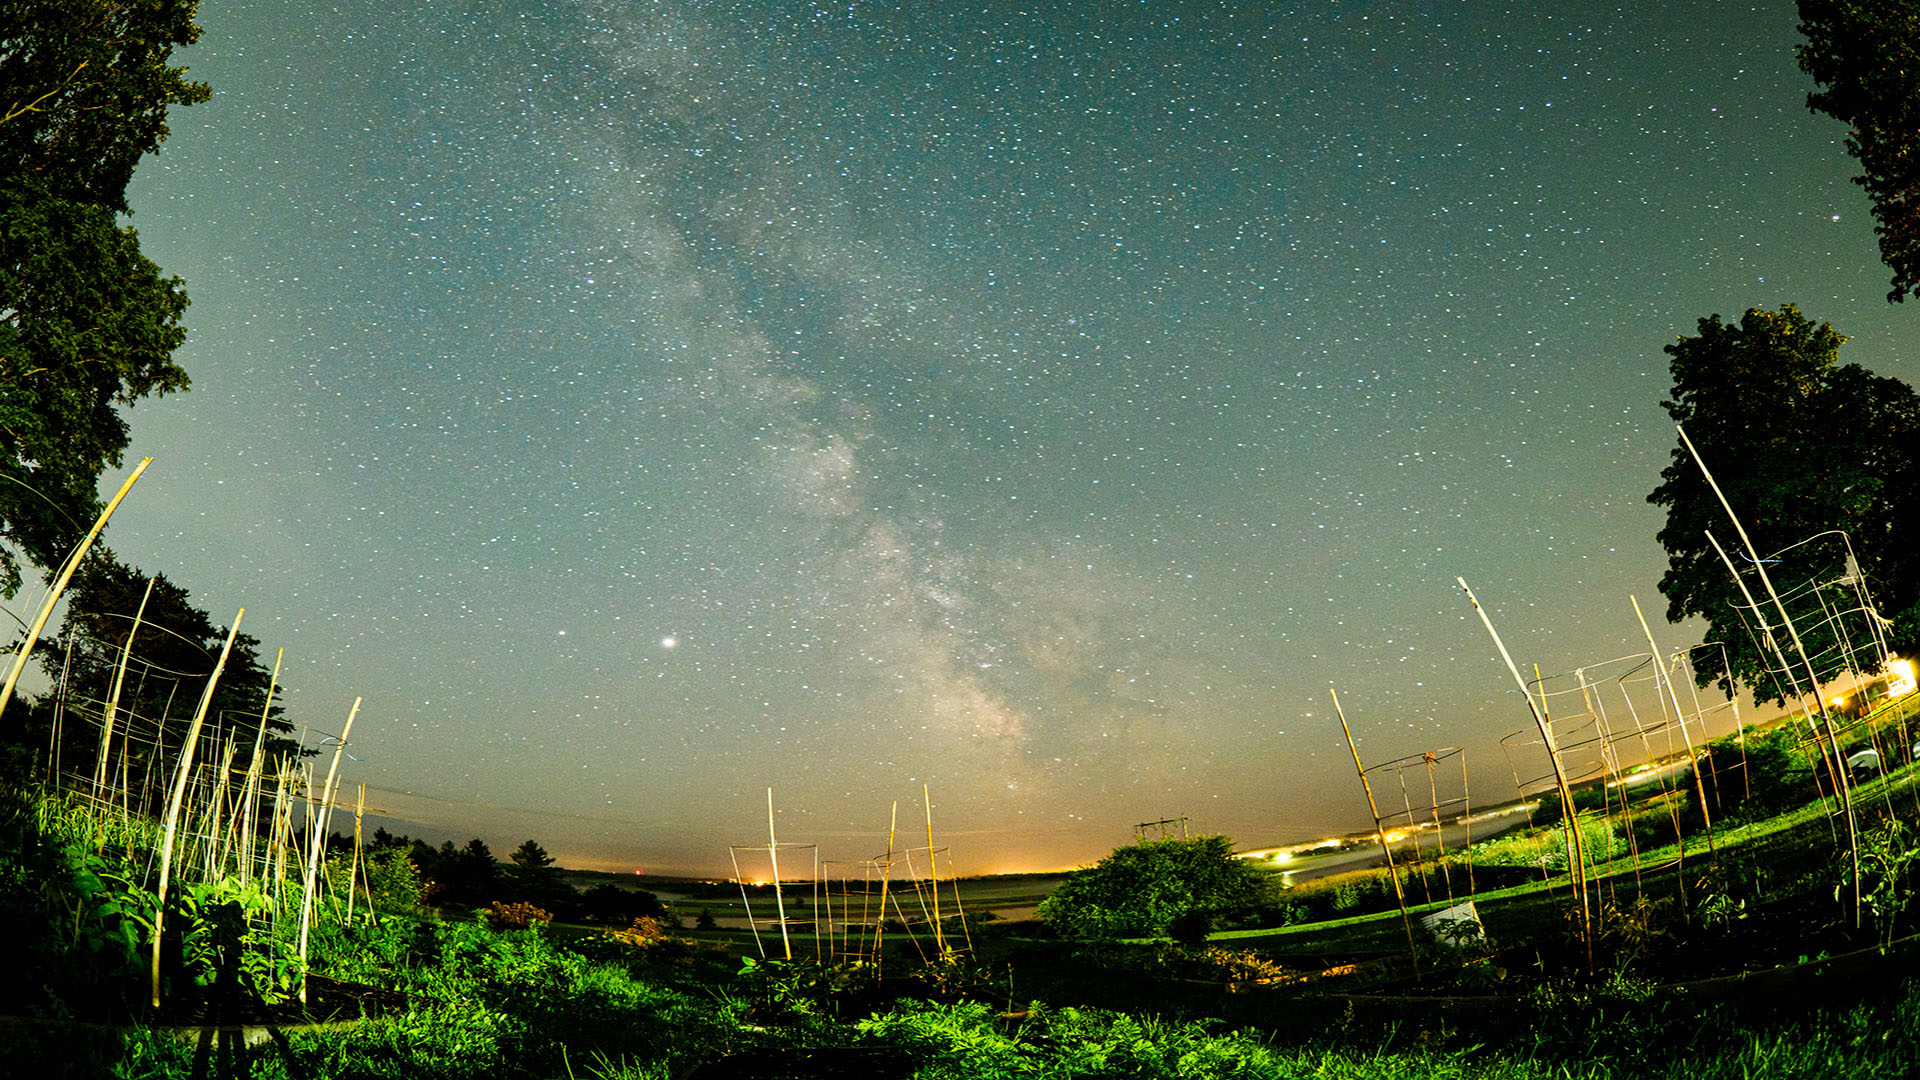 a rando astro shot with the milky way and jupiter